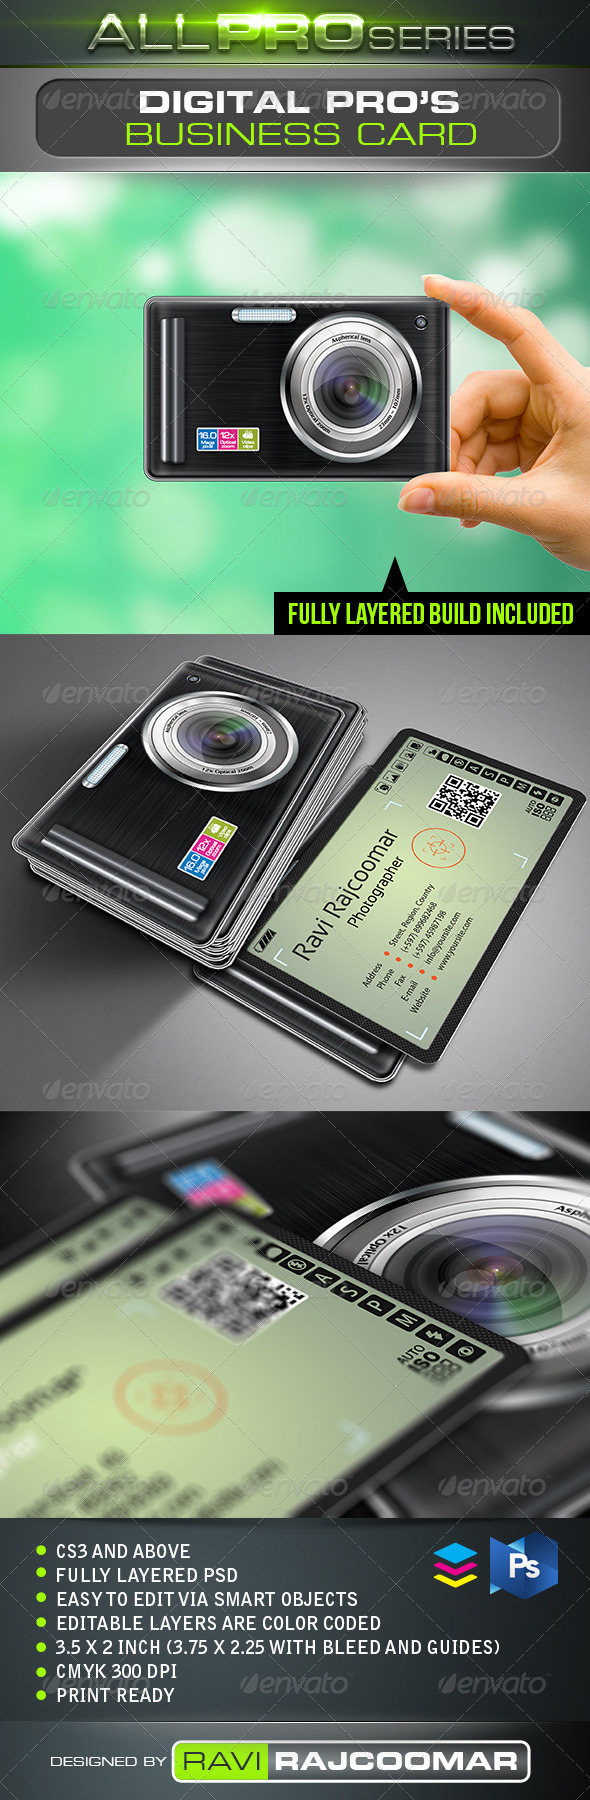 Digital Pro Business Card - Industry Specific Business Cards